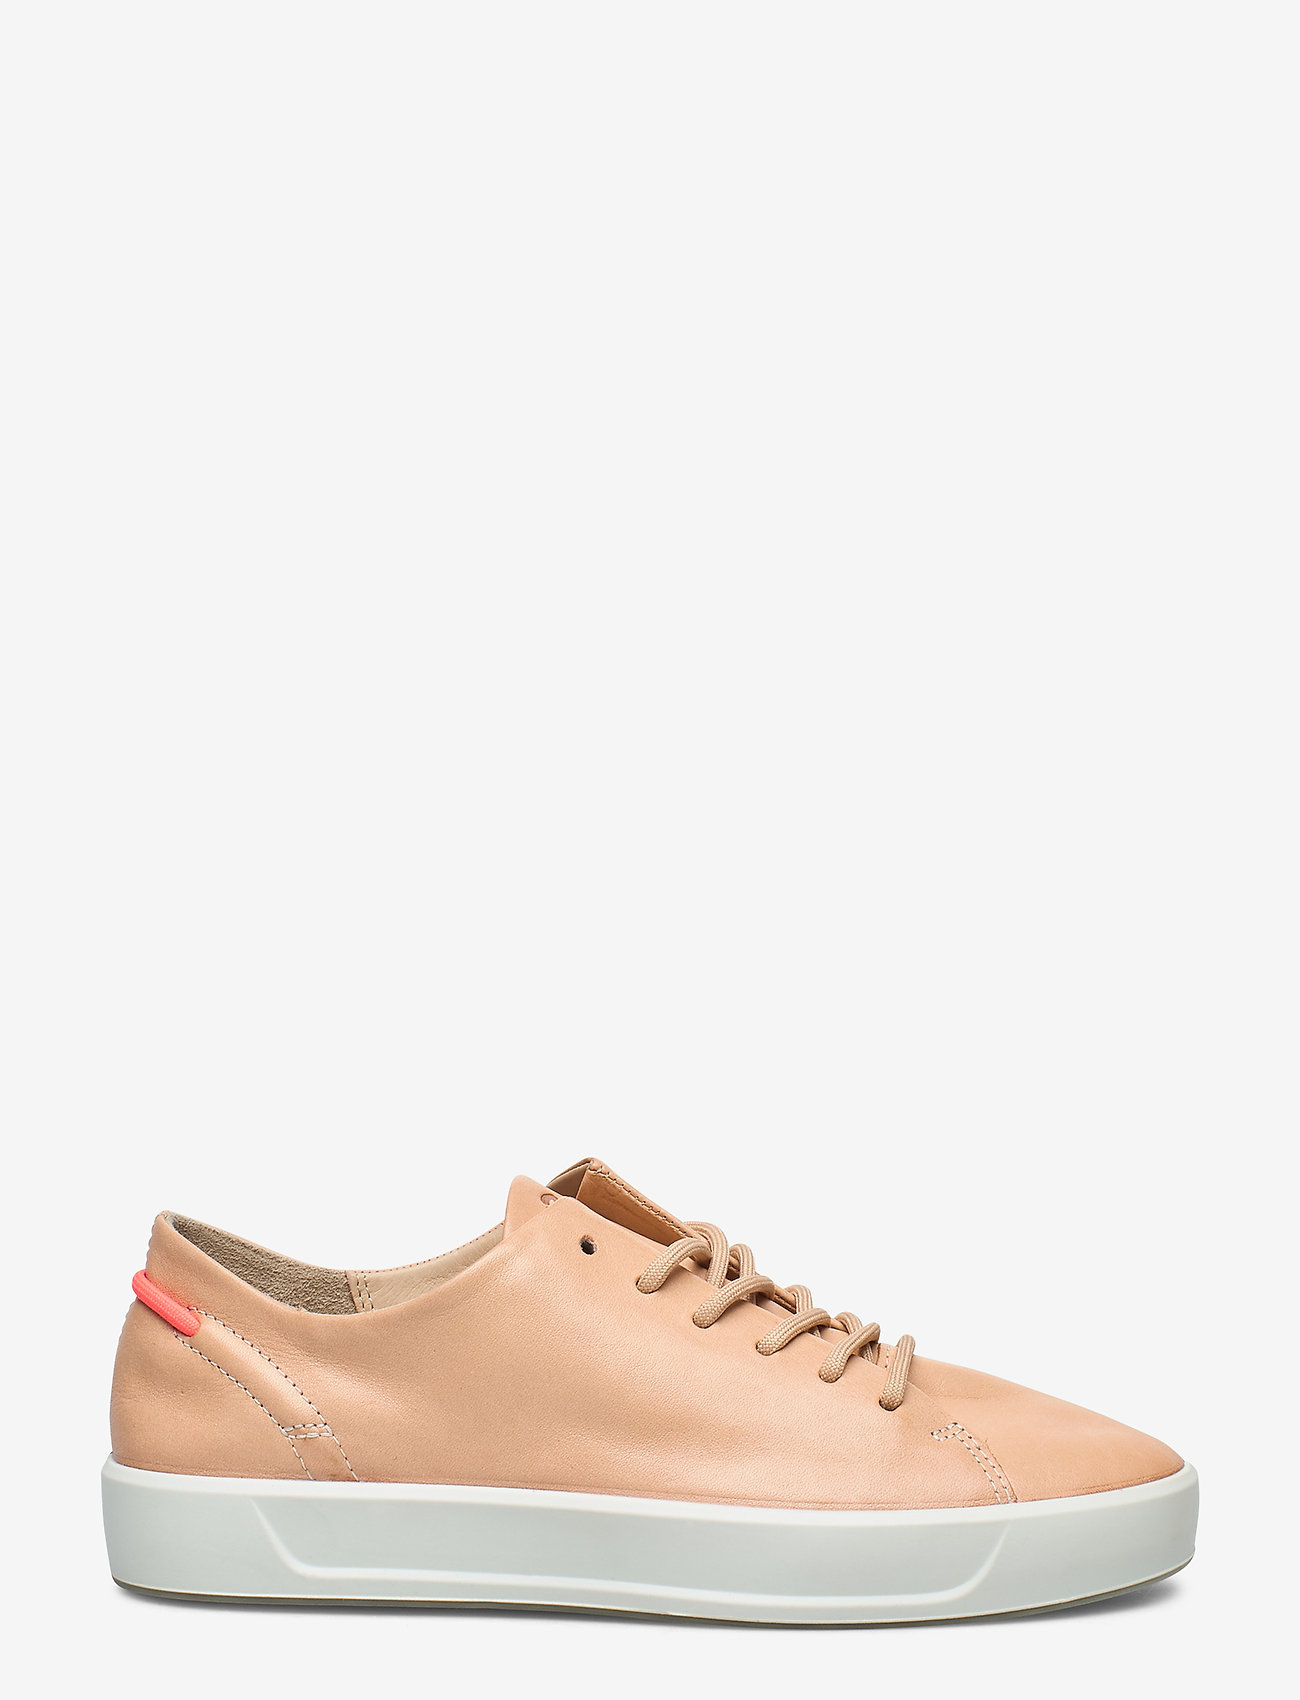 ECCO - SOFT 8 W - lage sneakers - natural nude m1 - 1